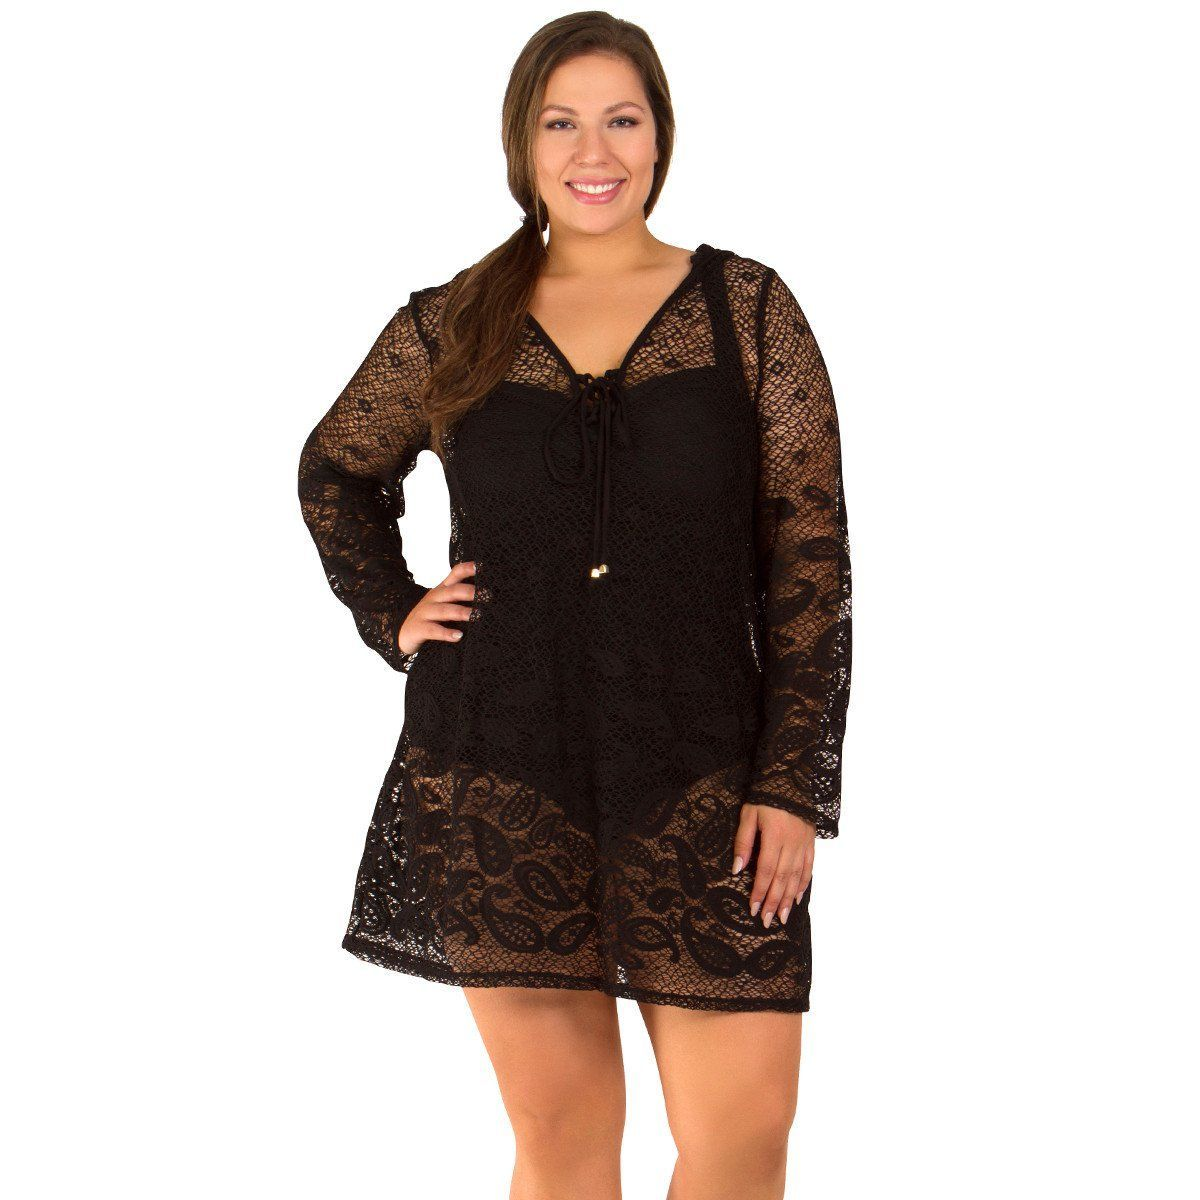 195809cc99b Riviera Paisley Women s Plus Size Cover-Up from Dotti - Available in WHITE  and BLACK